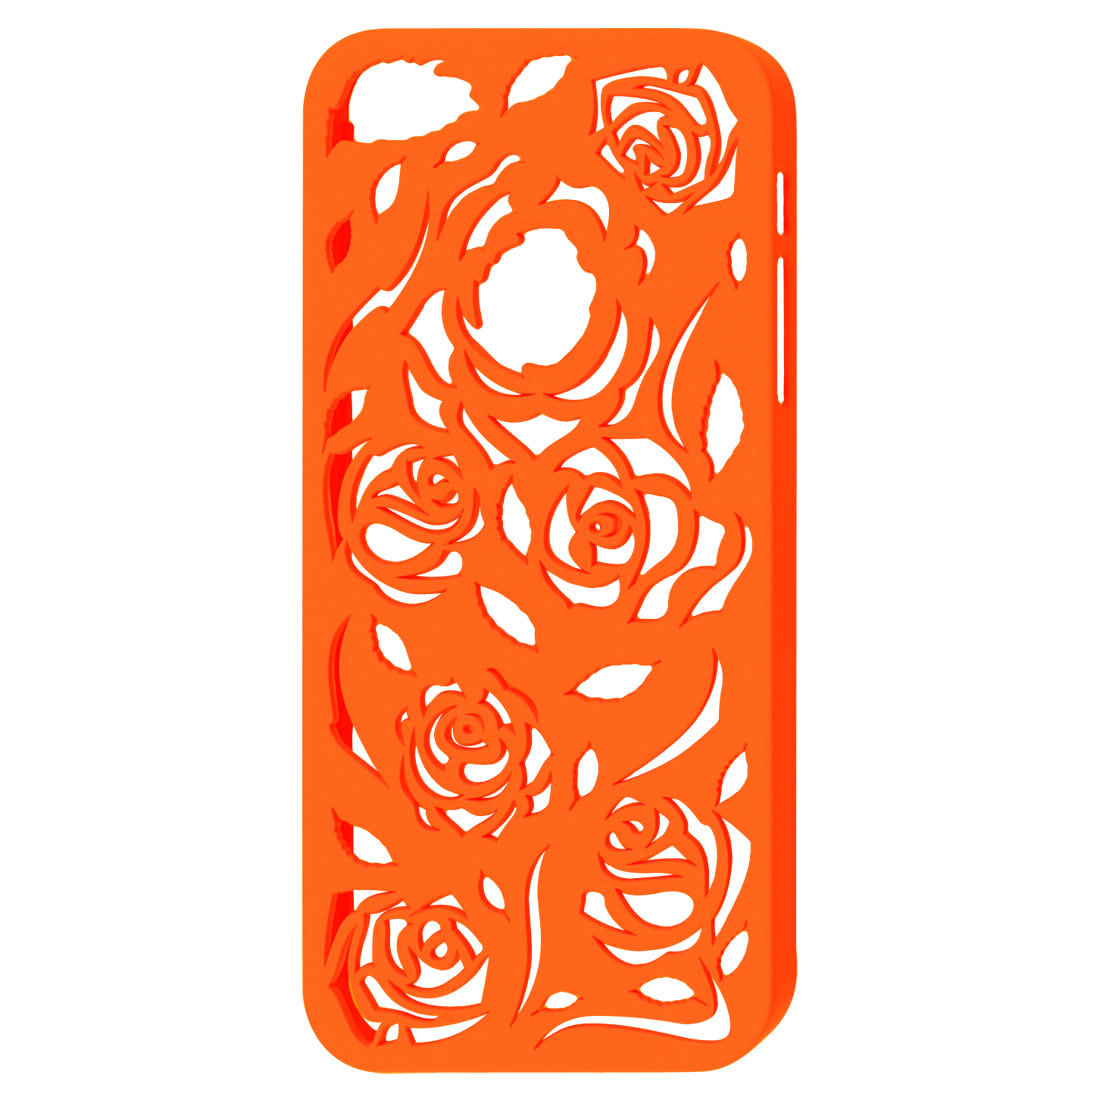 Hollow Out Rose Design Orange Red Back Case Cover for iPhone 5 5G 5th